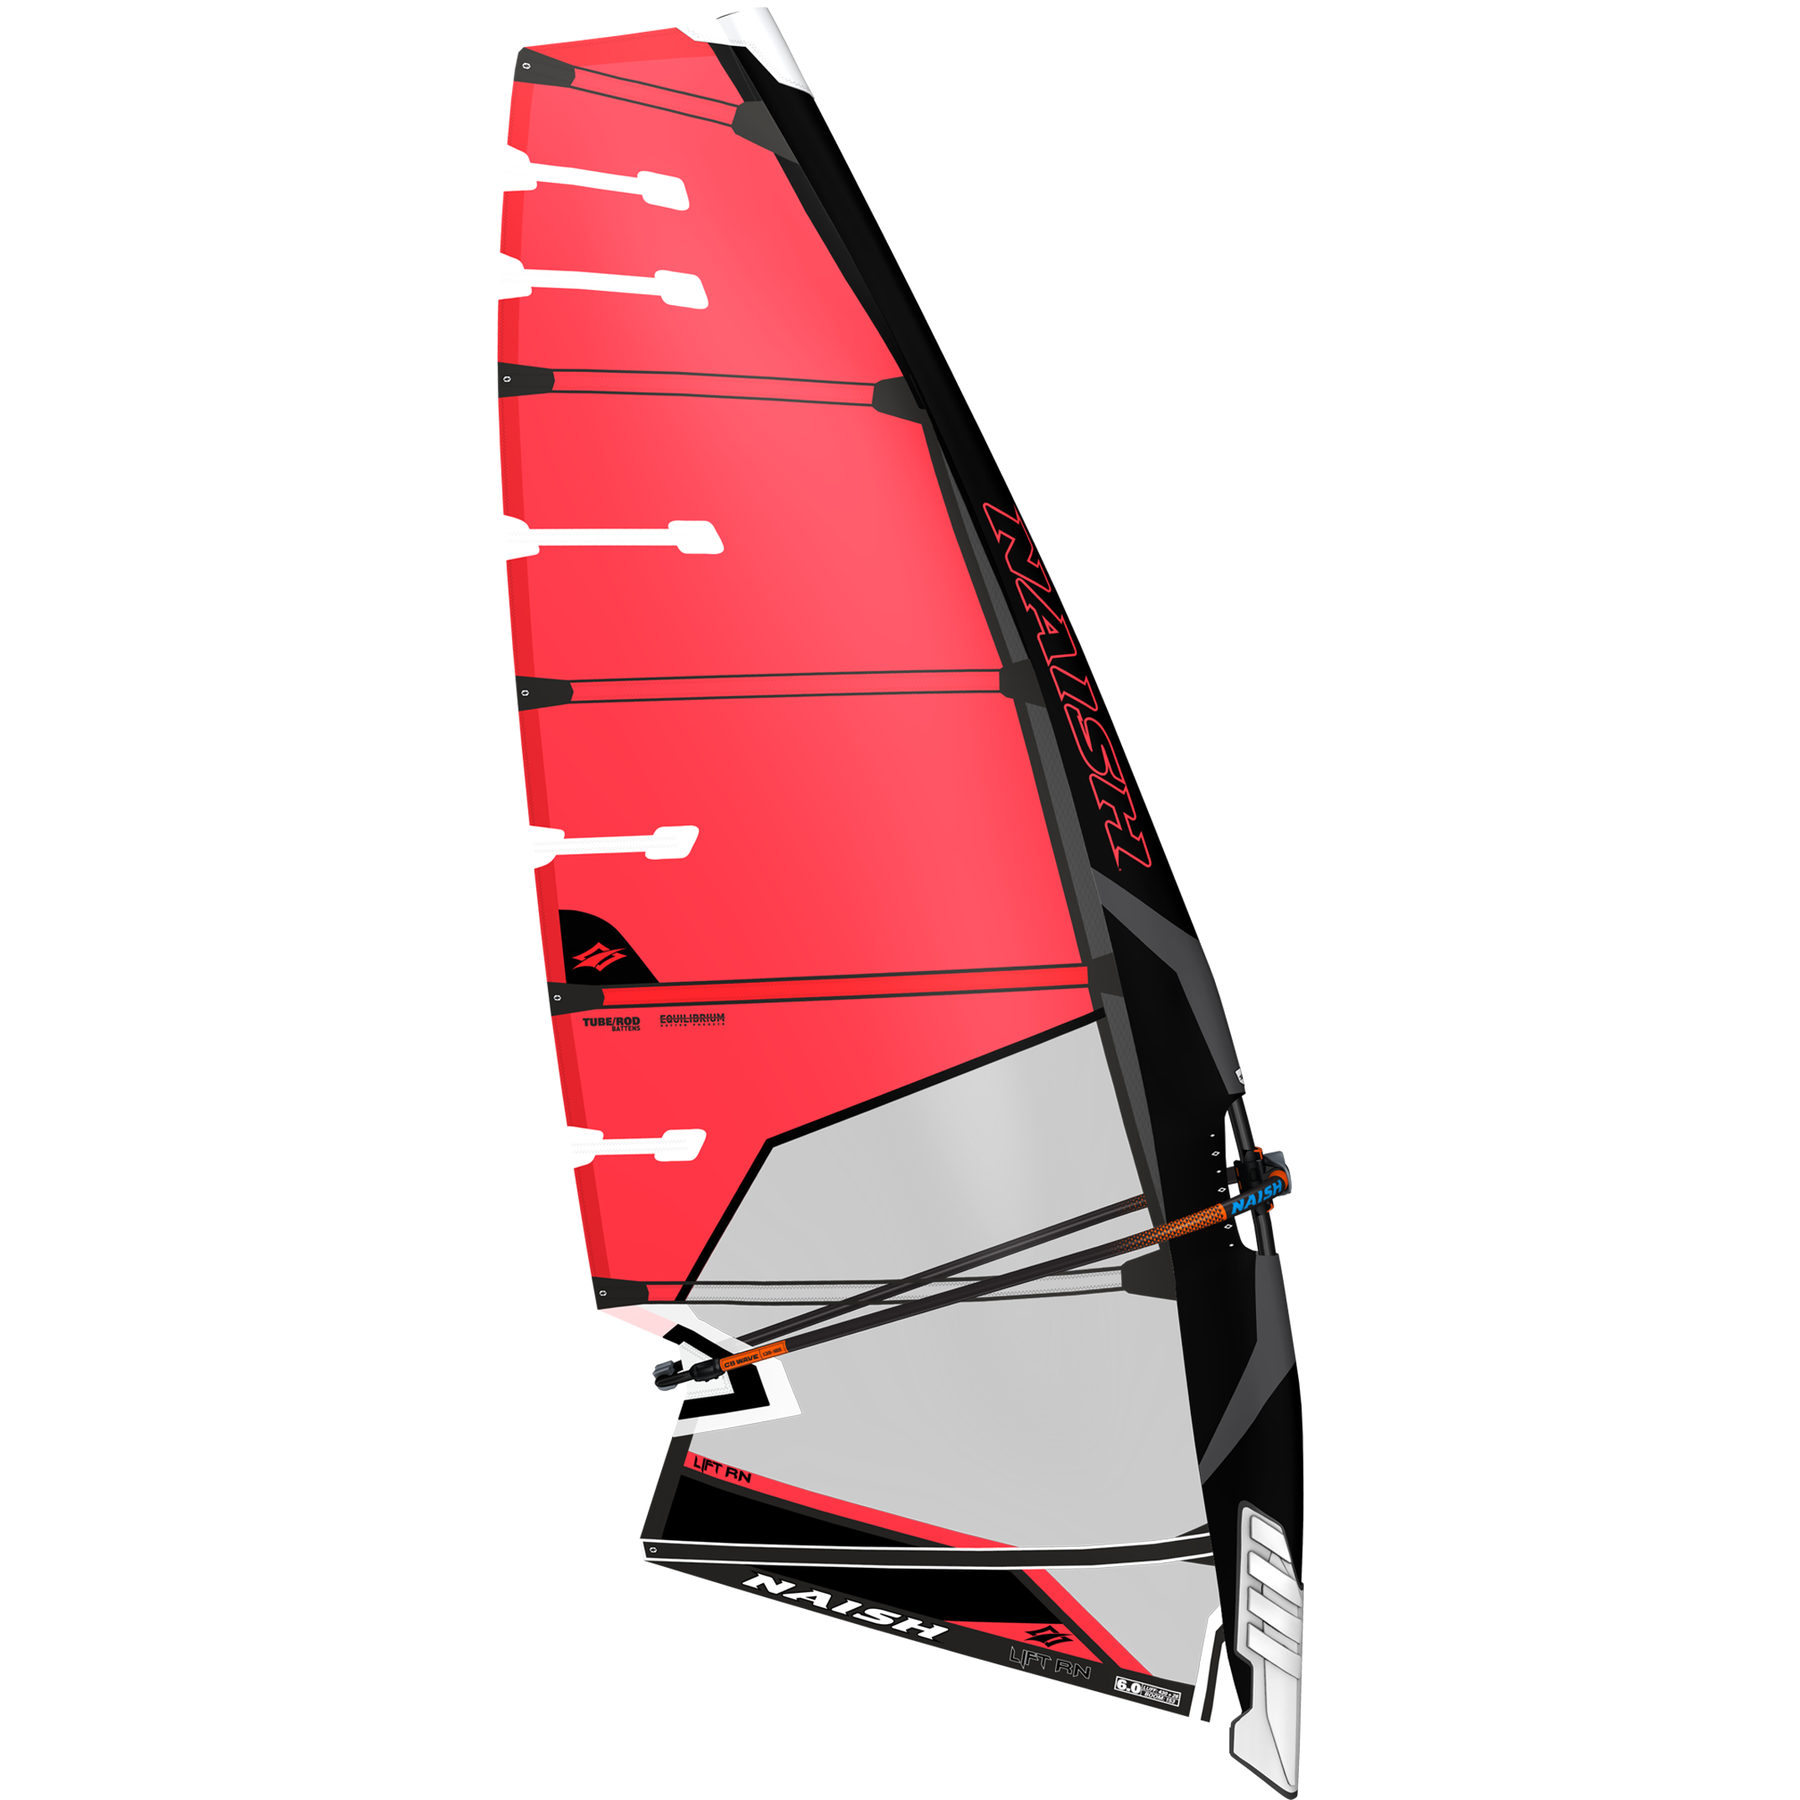 2021 S25 Naish Lift RN Windsurf Foil Sail